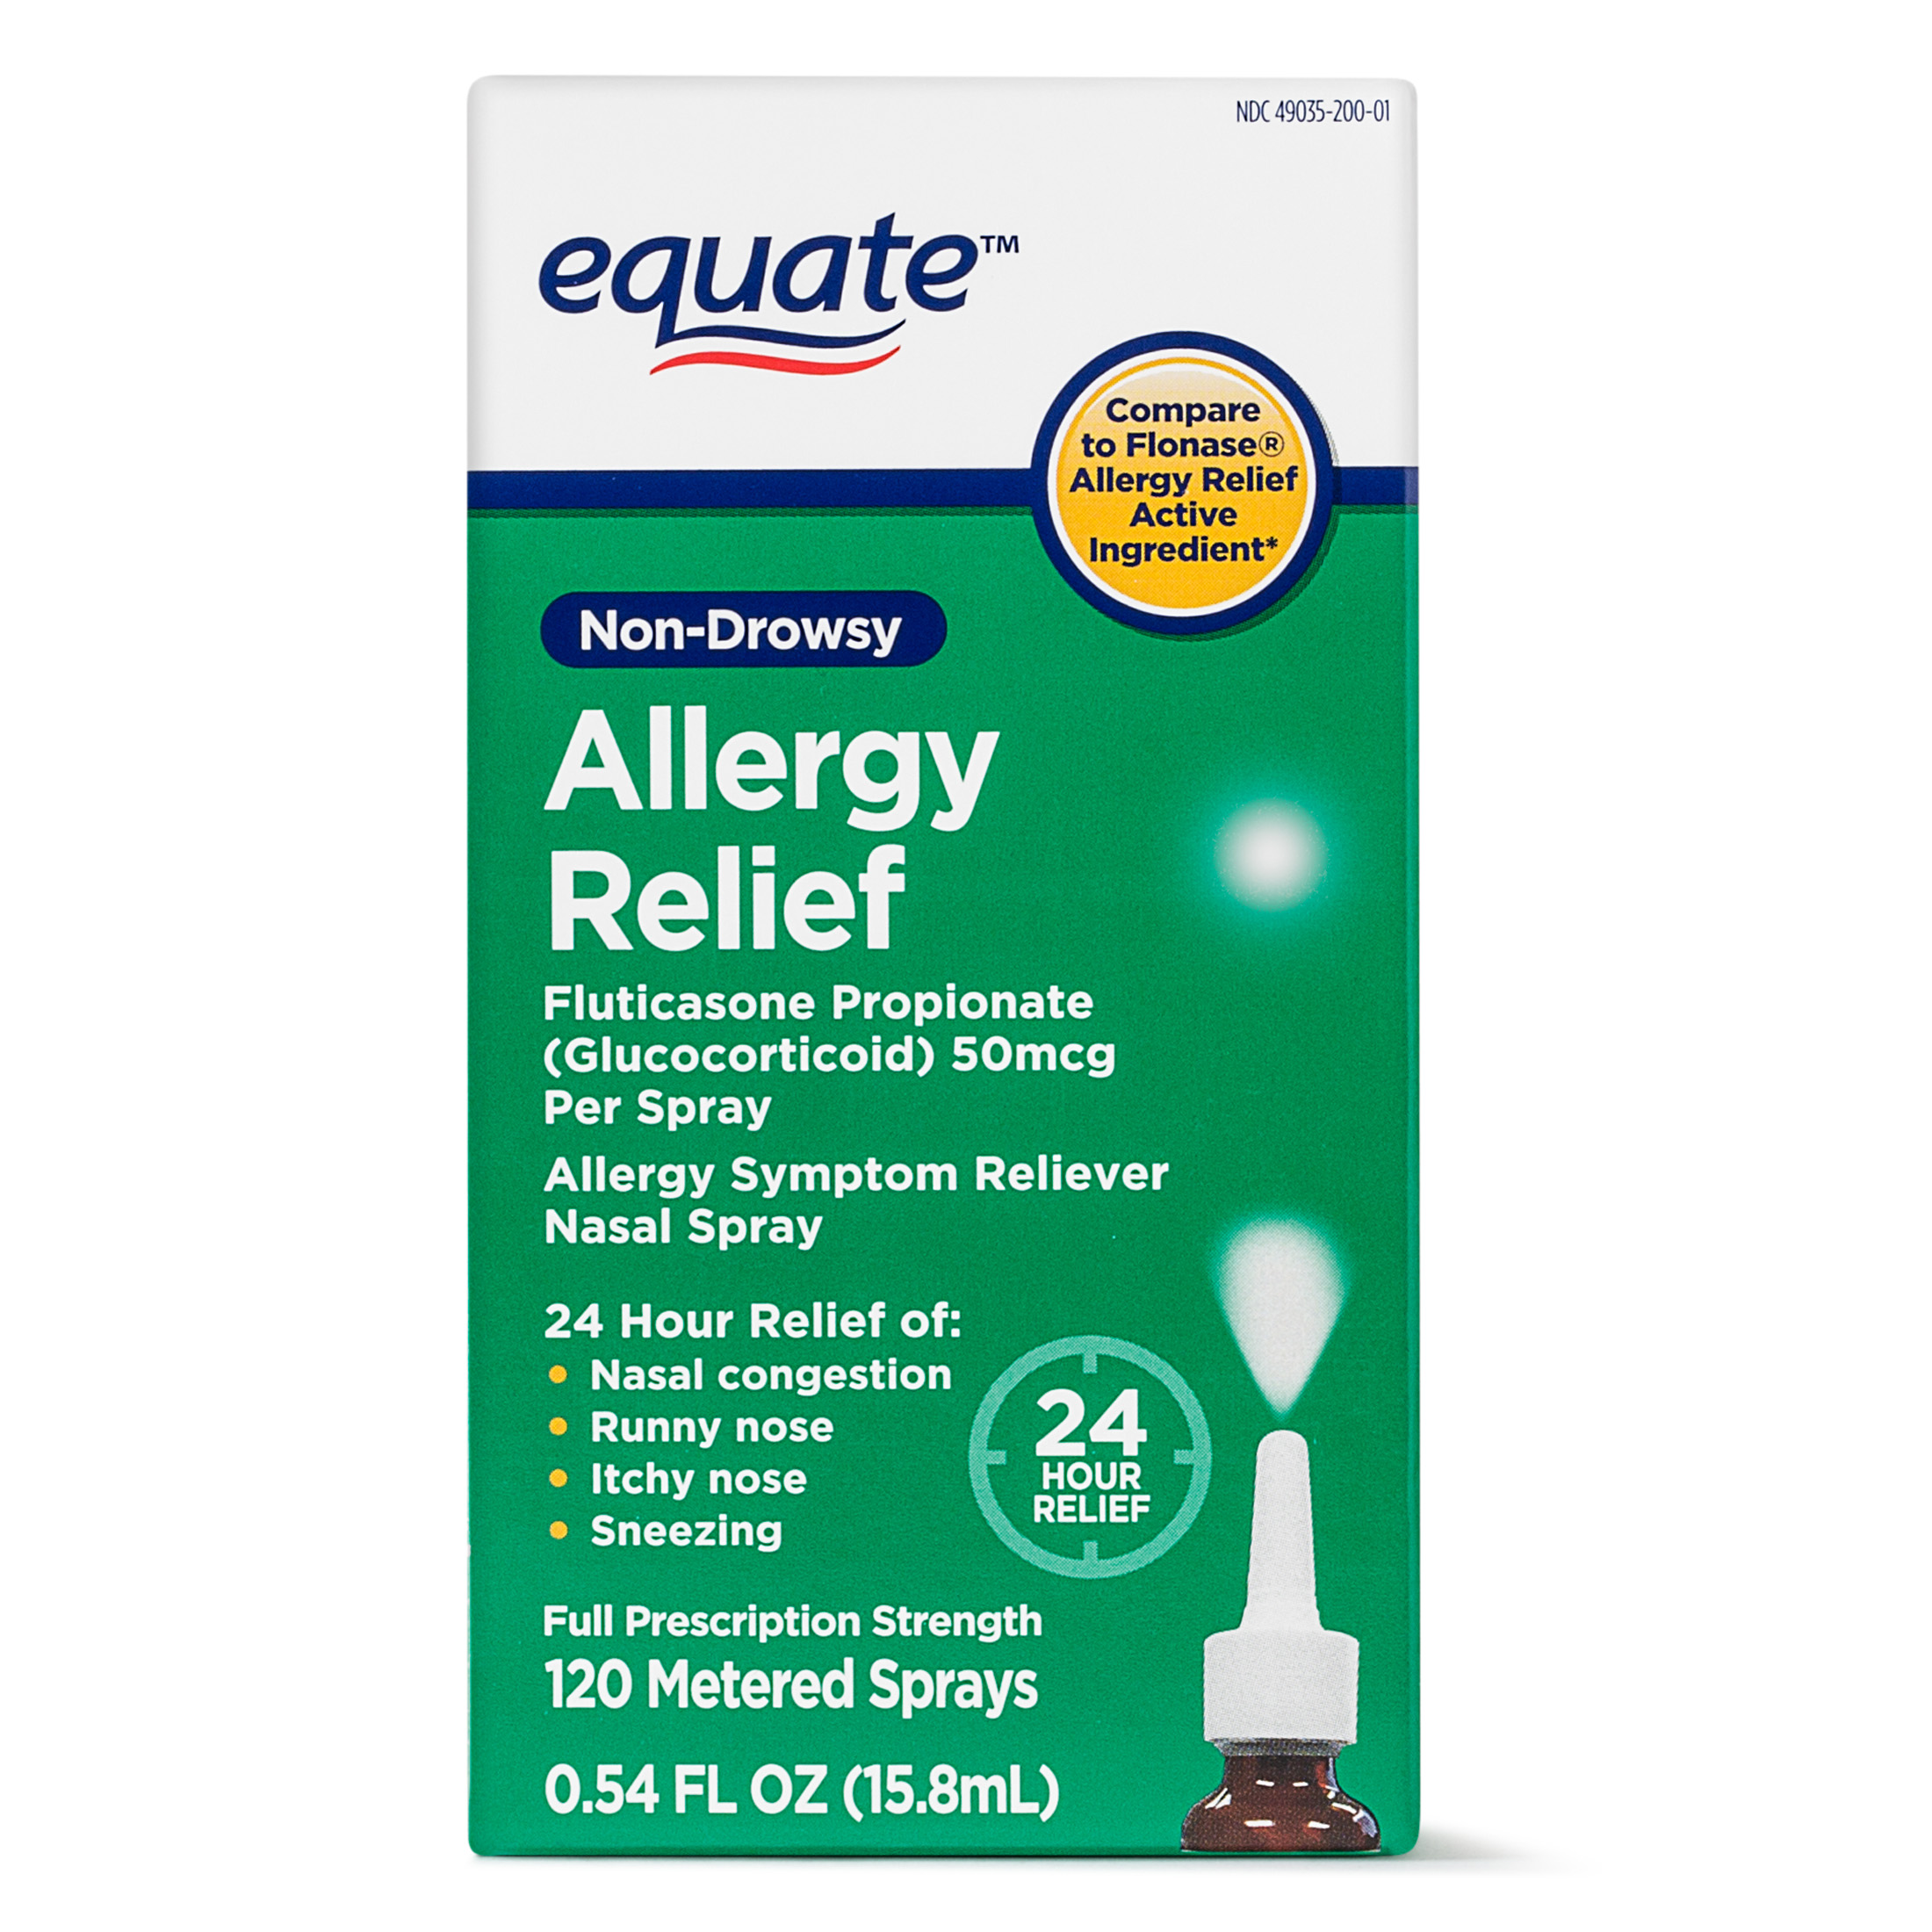 Equate Non-Drowsy Allergy Relief Nasal Spray, 50 mcg, 0.54 Oz